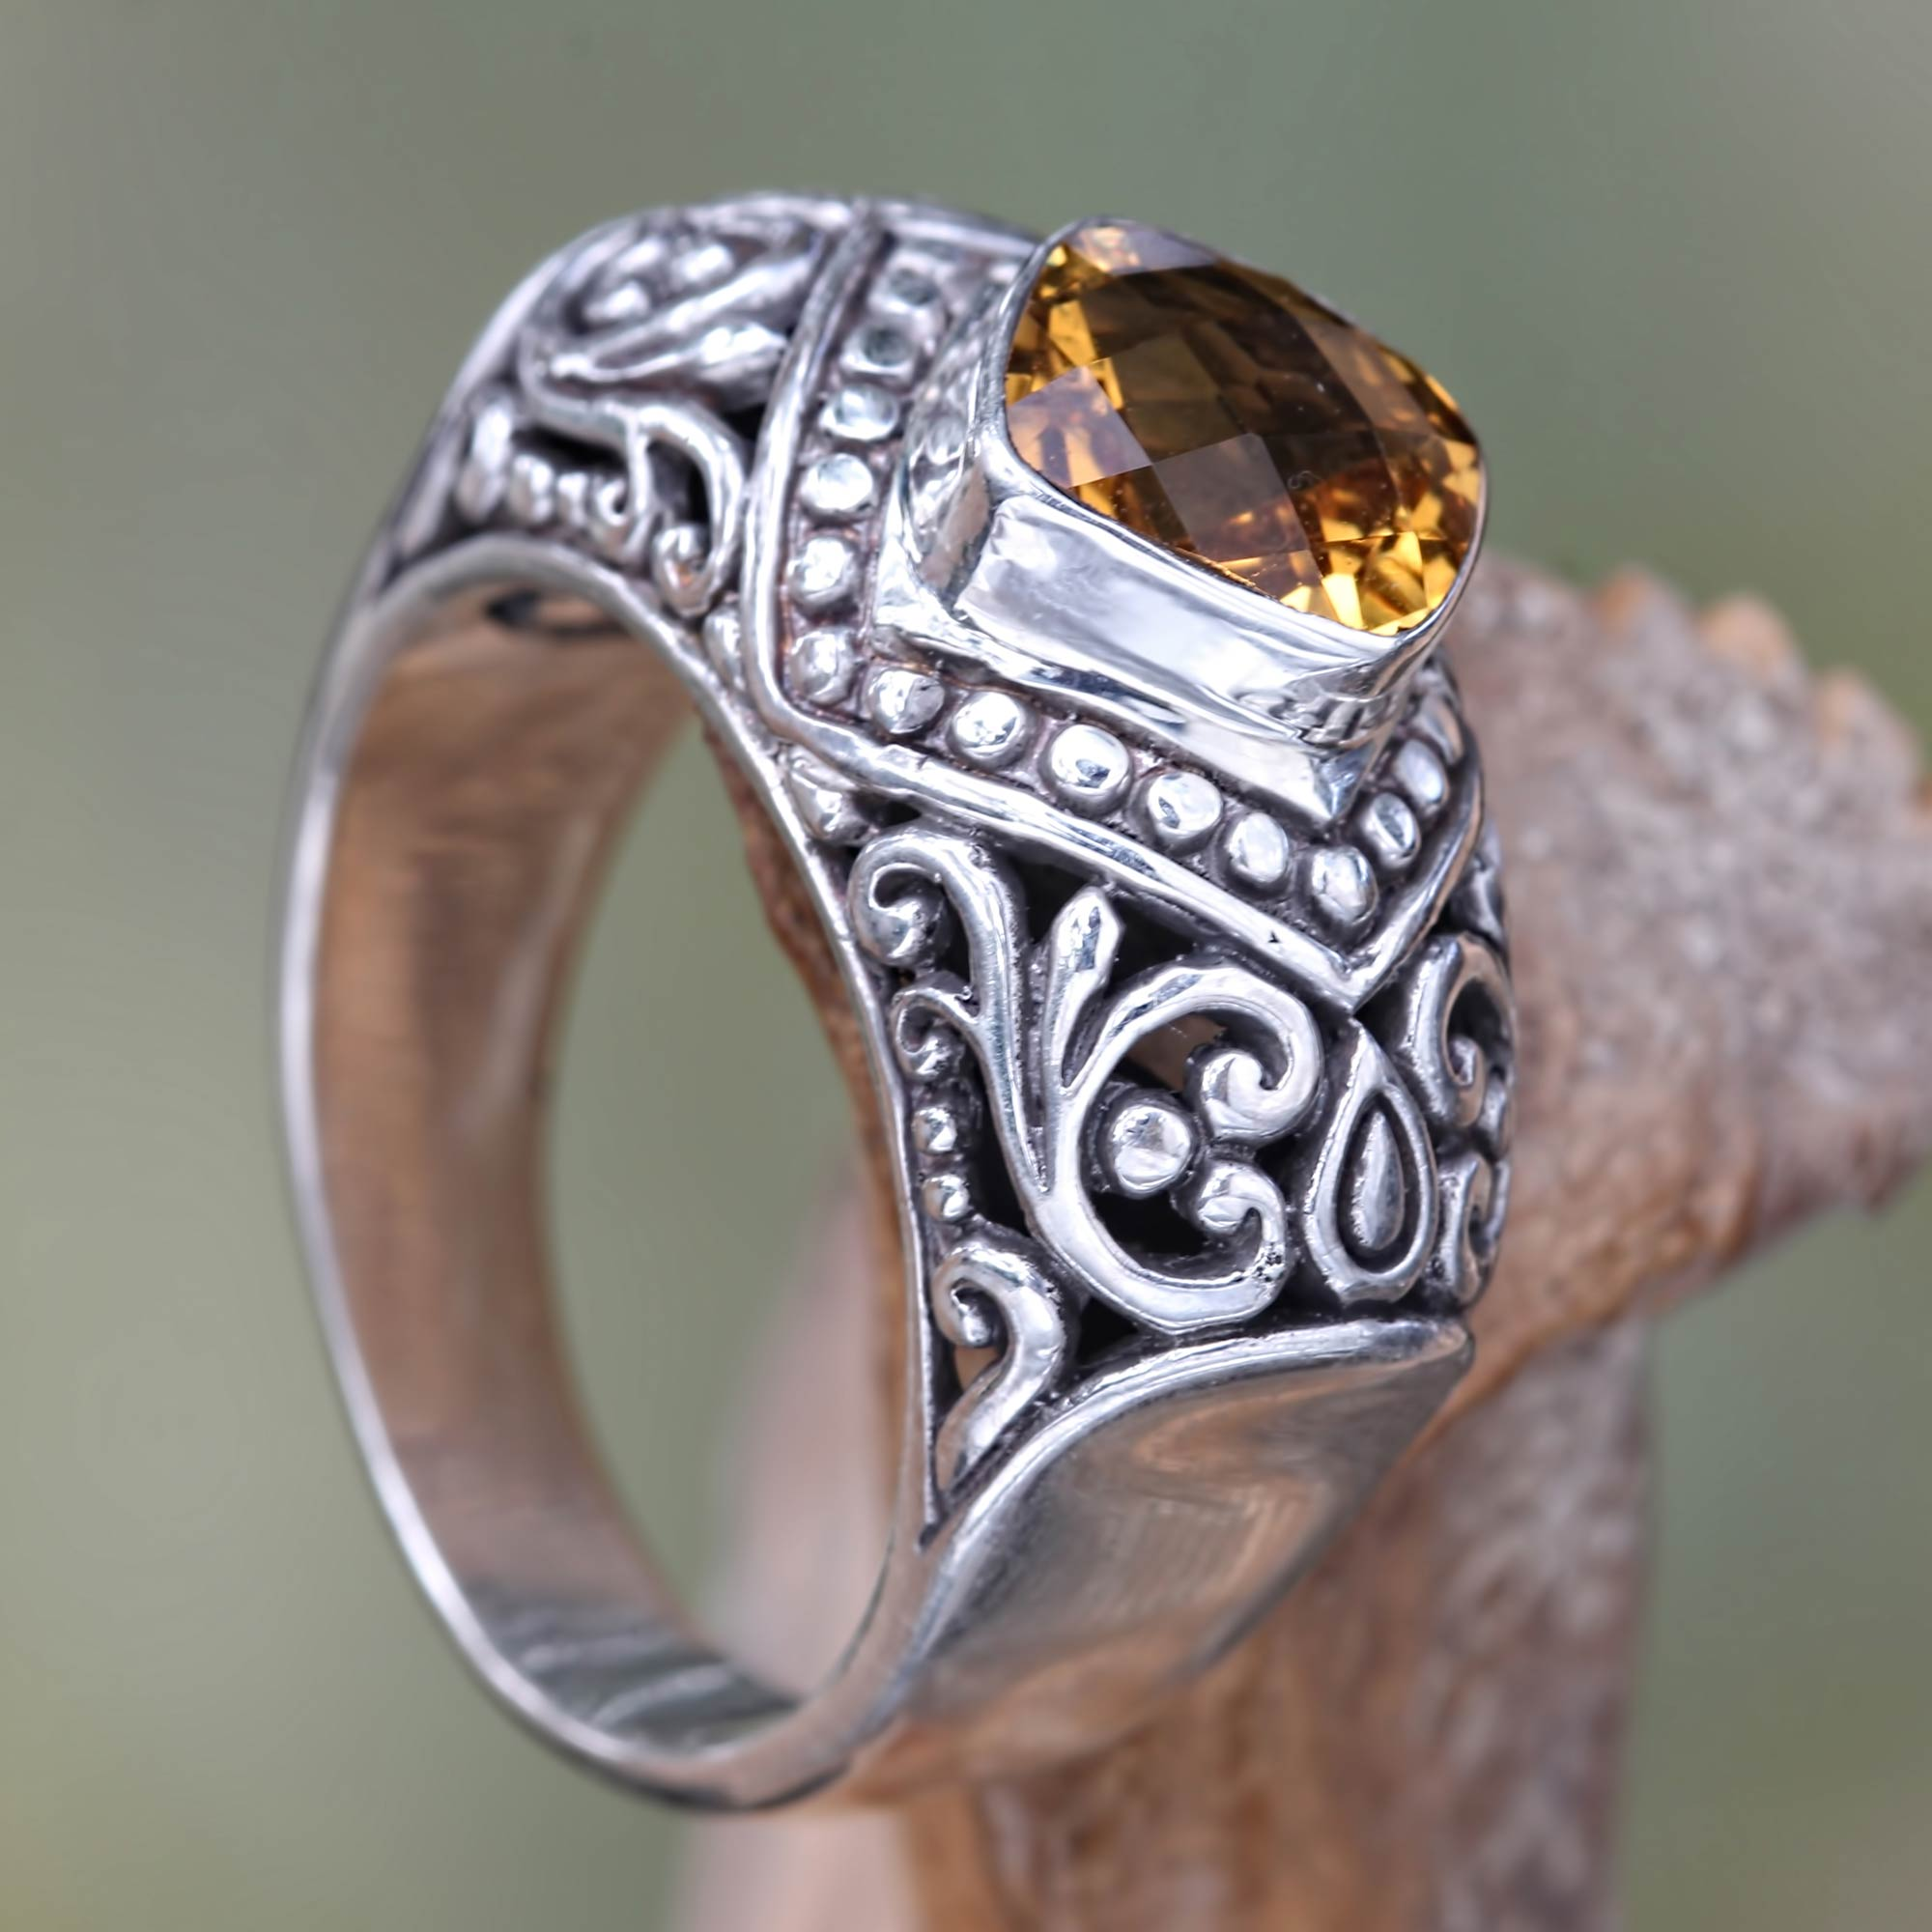 Festive Bali Handcrafted Citrine and Sterling Silver Cocktail Ring November's Birthstone